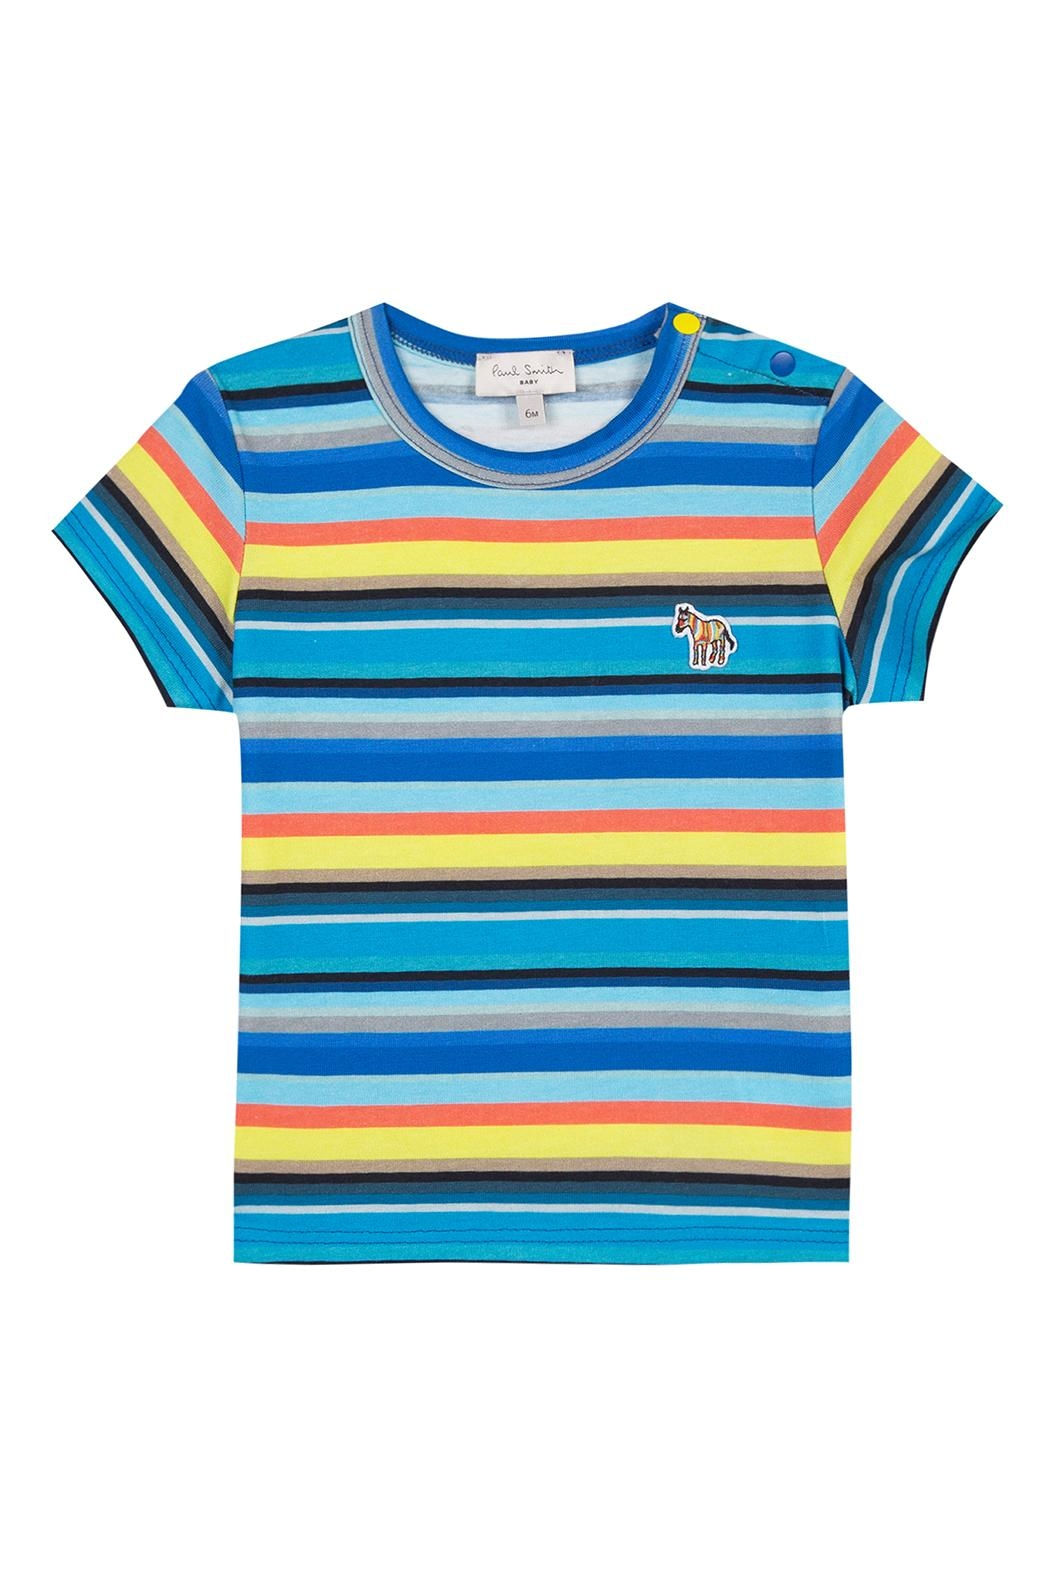 Paul Smith Junior Multi-Striped Tam T.Shirt - Main Image